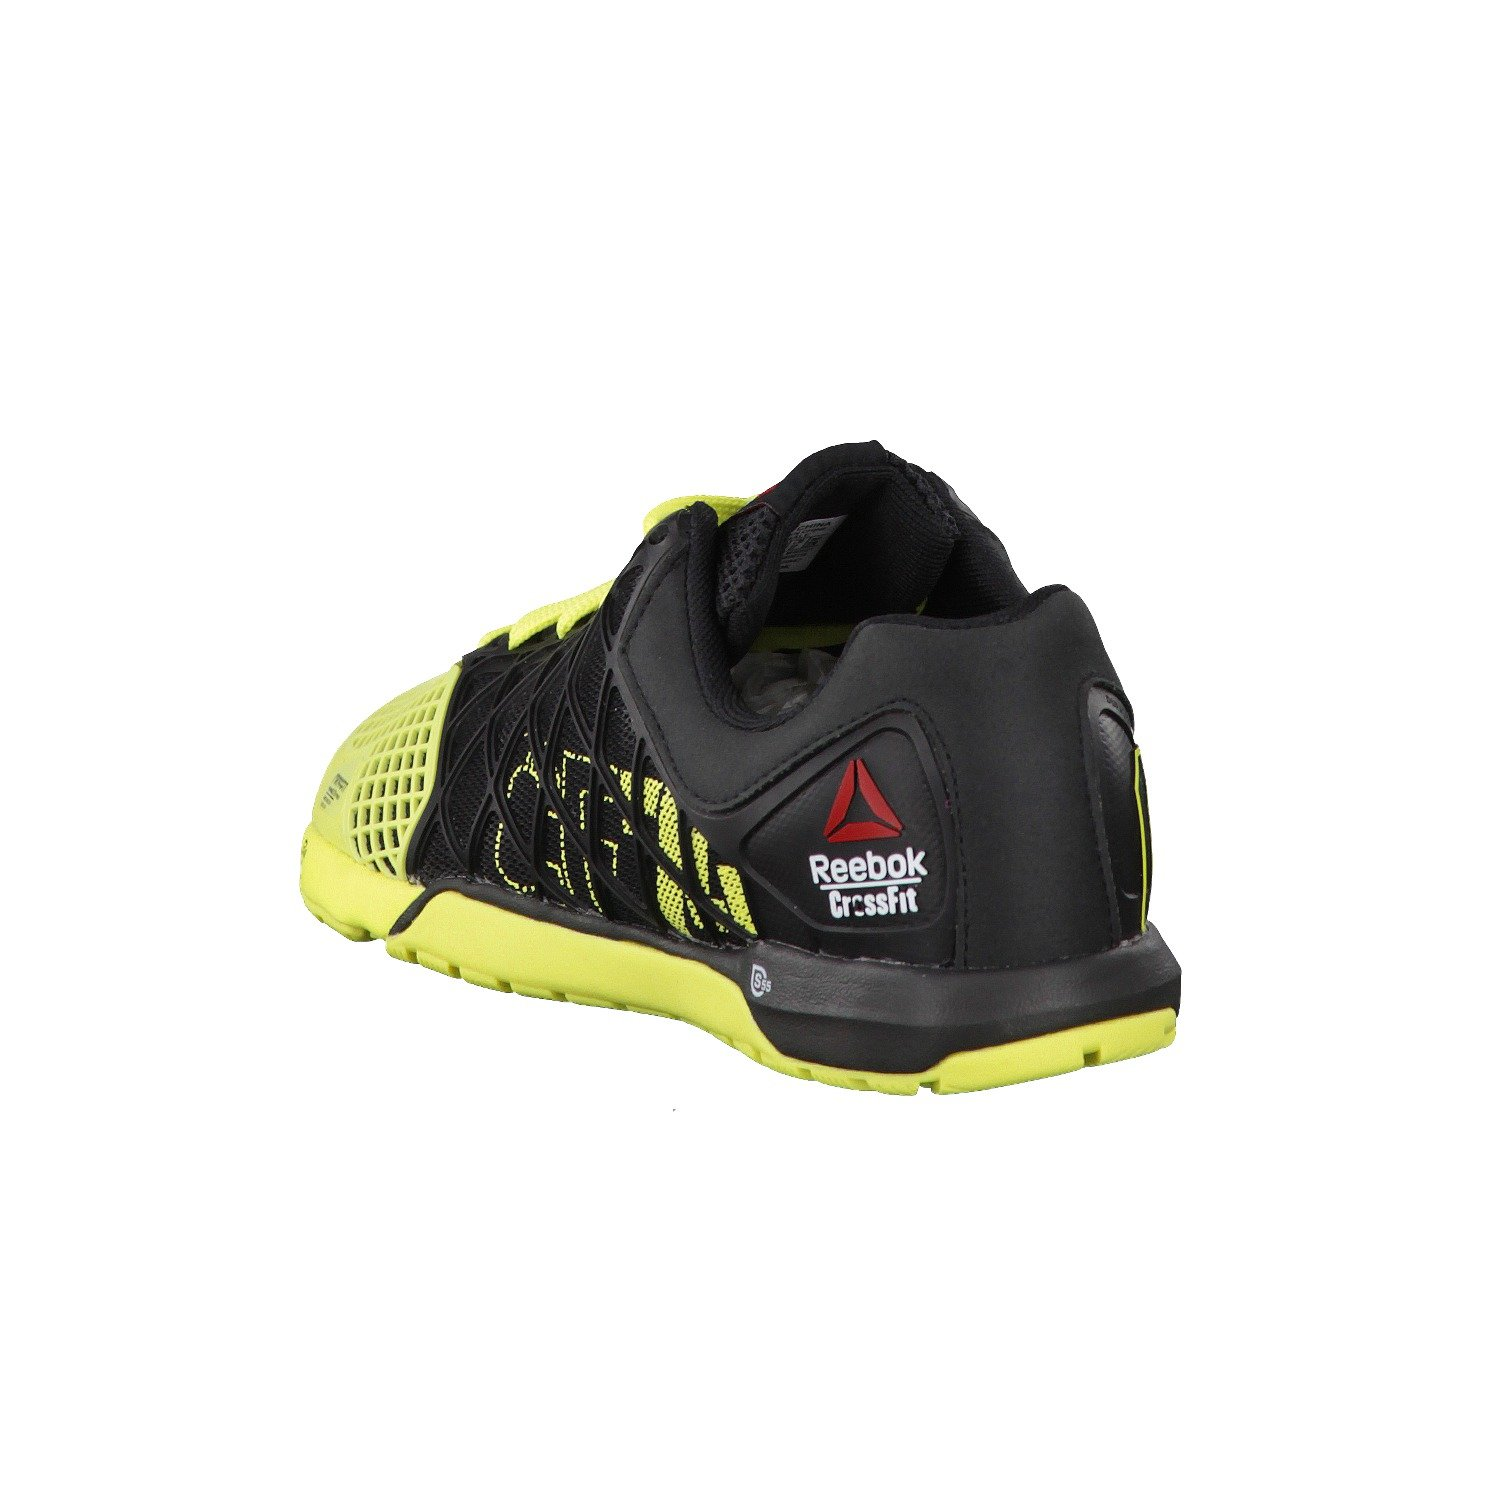 043de426d37 reebok crossfit running shoes cheap   OFF68% The Largest Catalog ...